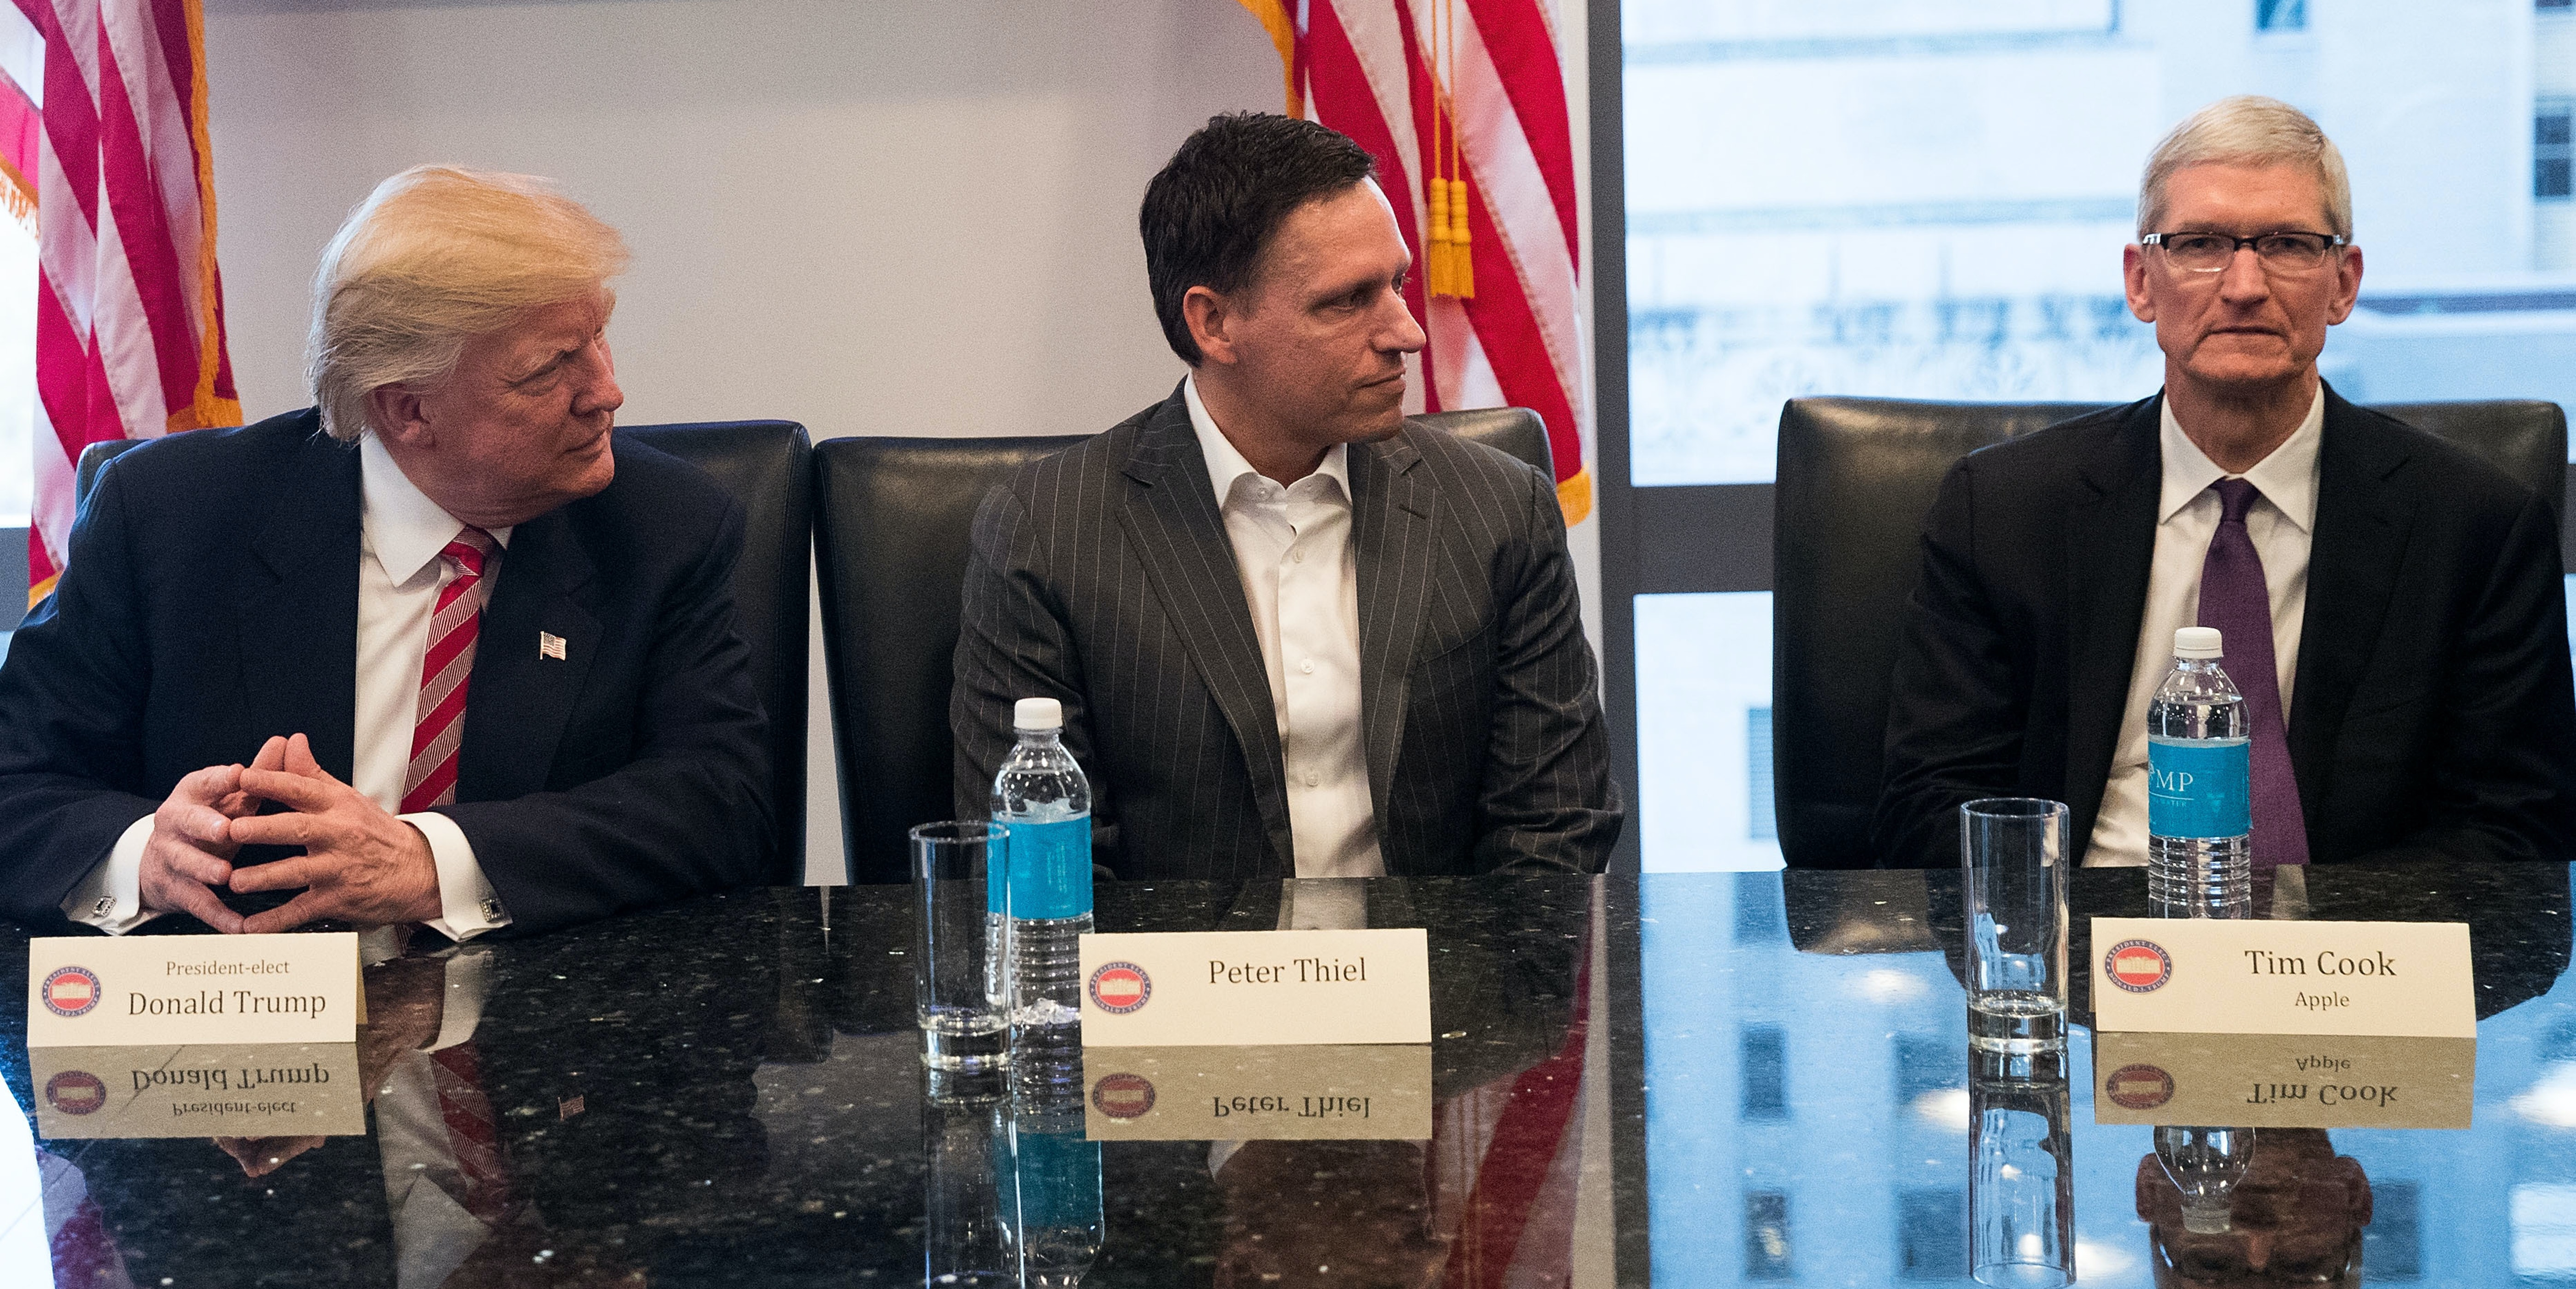 NEW YORK, NY - DECEMBER 14: (L to R) President-elect Donald Trump, Peter Thiel and Tim Cook, chief executive officer of Apple, Inc., listen during a meeting with technology executives at Trump Tower, December 14, 2016 in New York City. This is the first major meeting between President-elect Trump and technology industry leaders. (Photo by Drew Angerer/Getty Images)